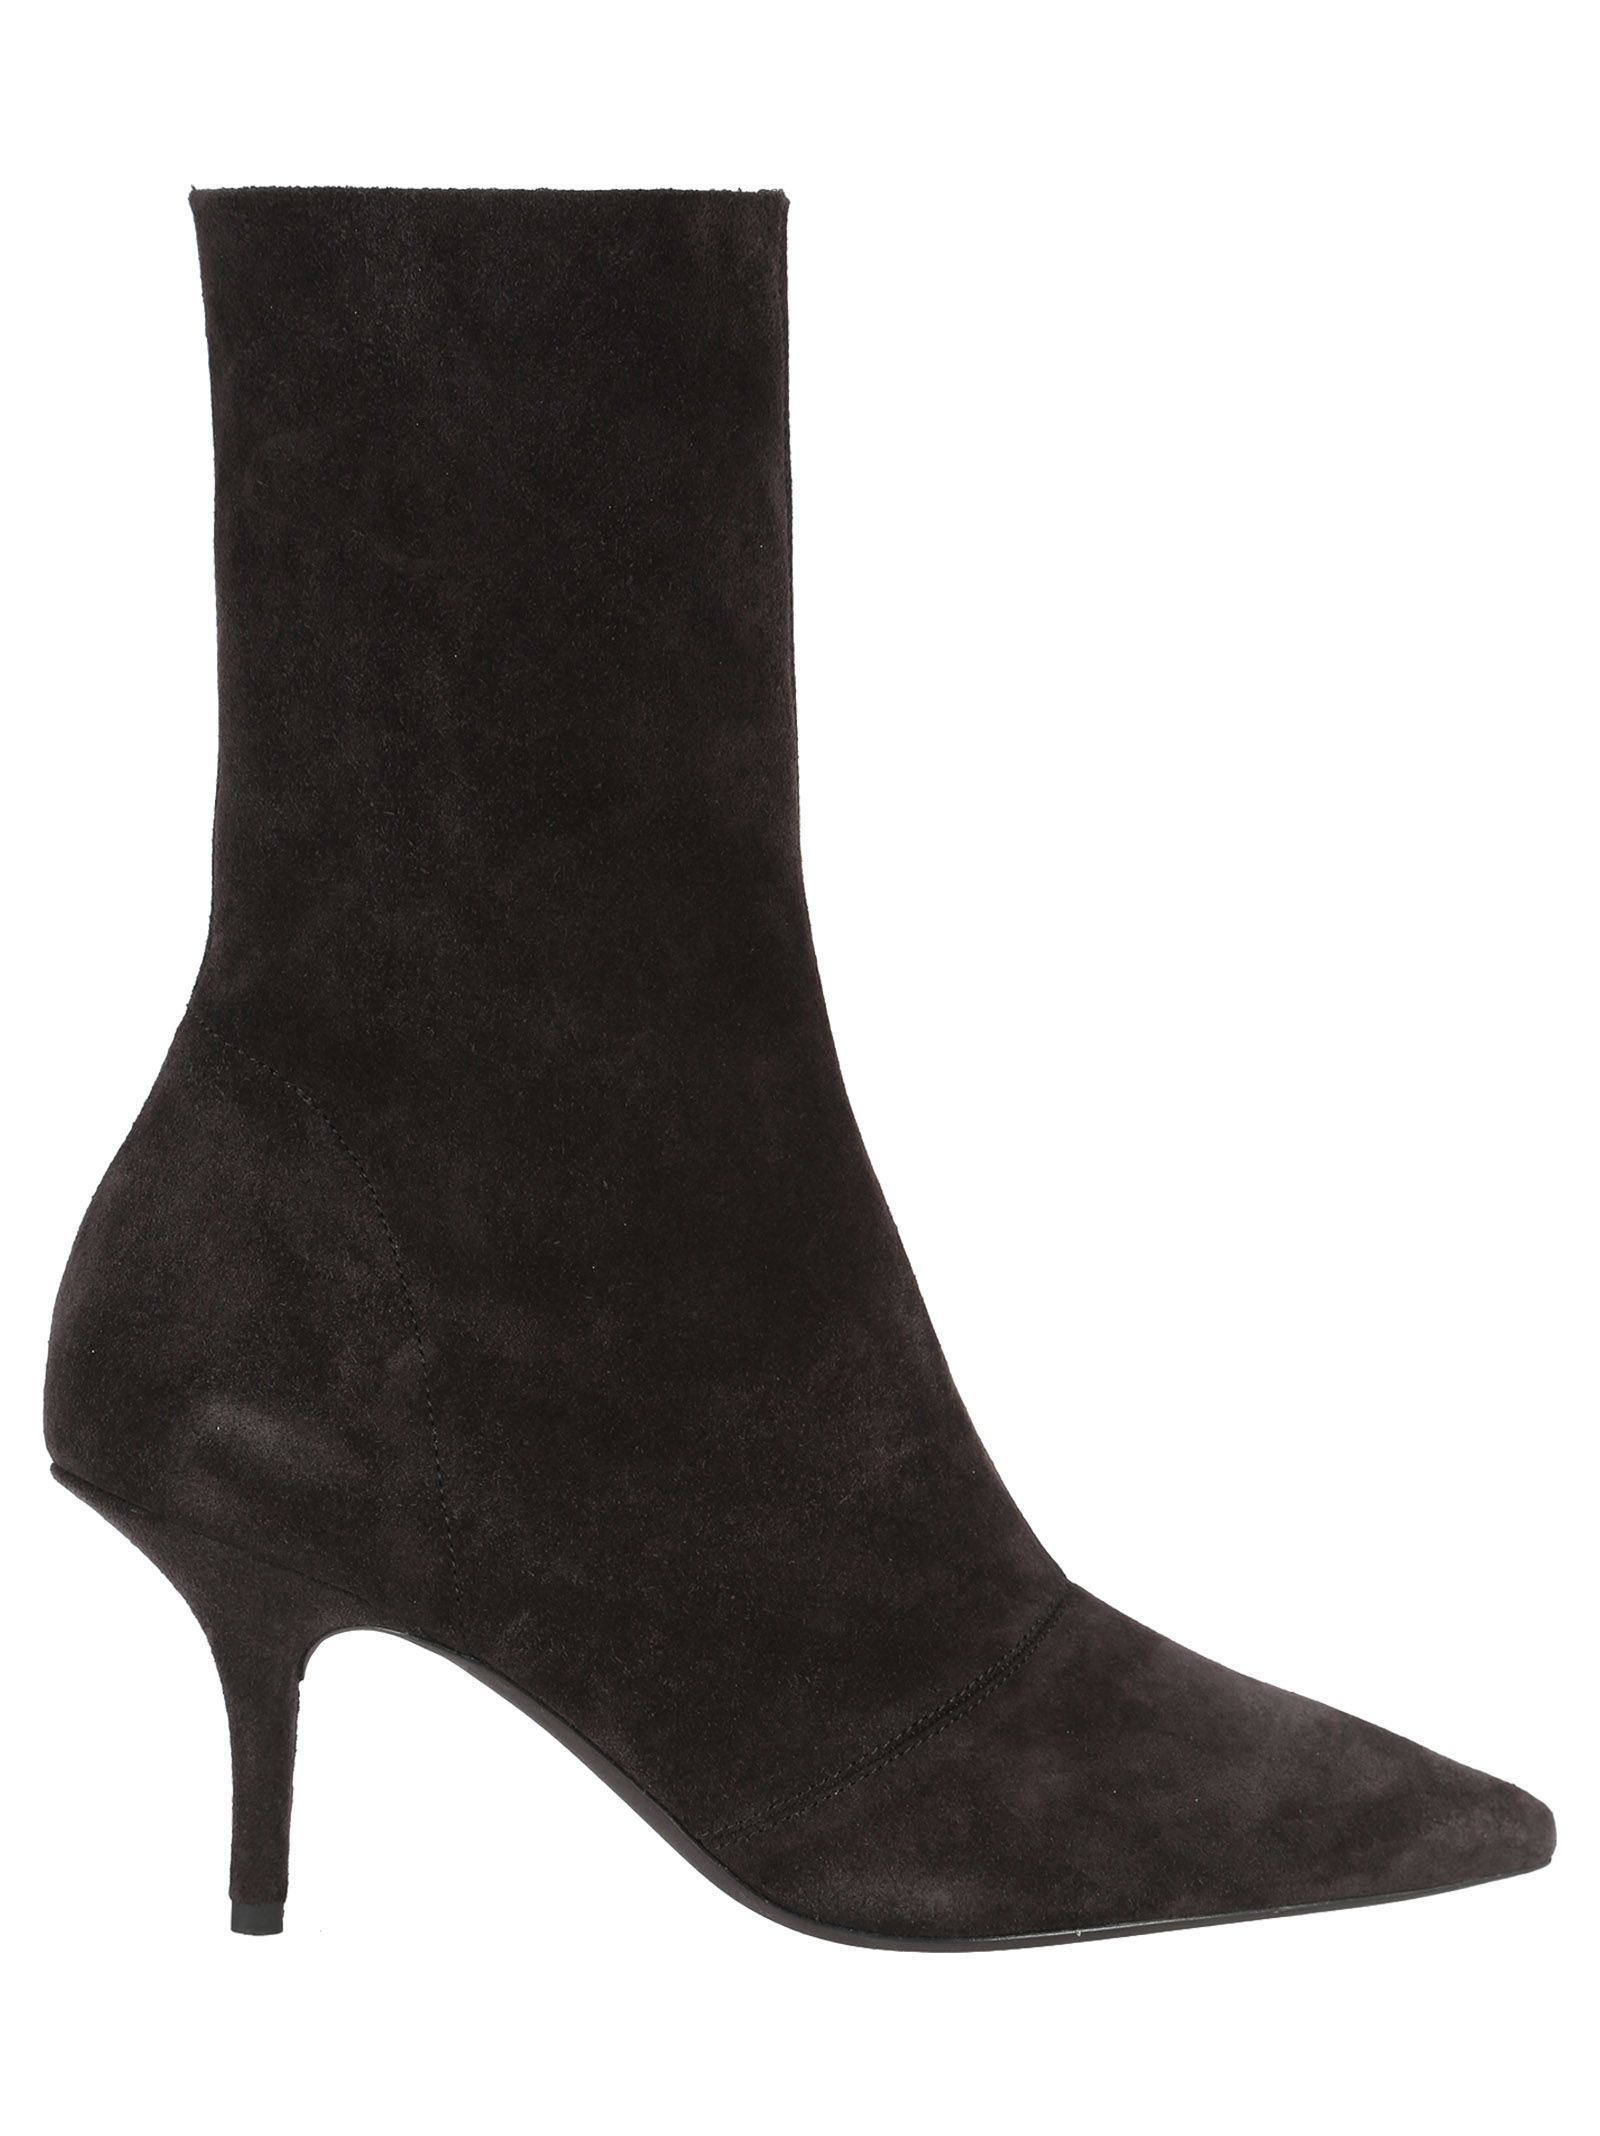 YEEZY KANYE WEST STRETCH ANCKLE BOOT